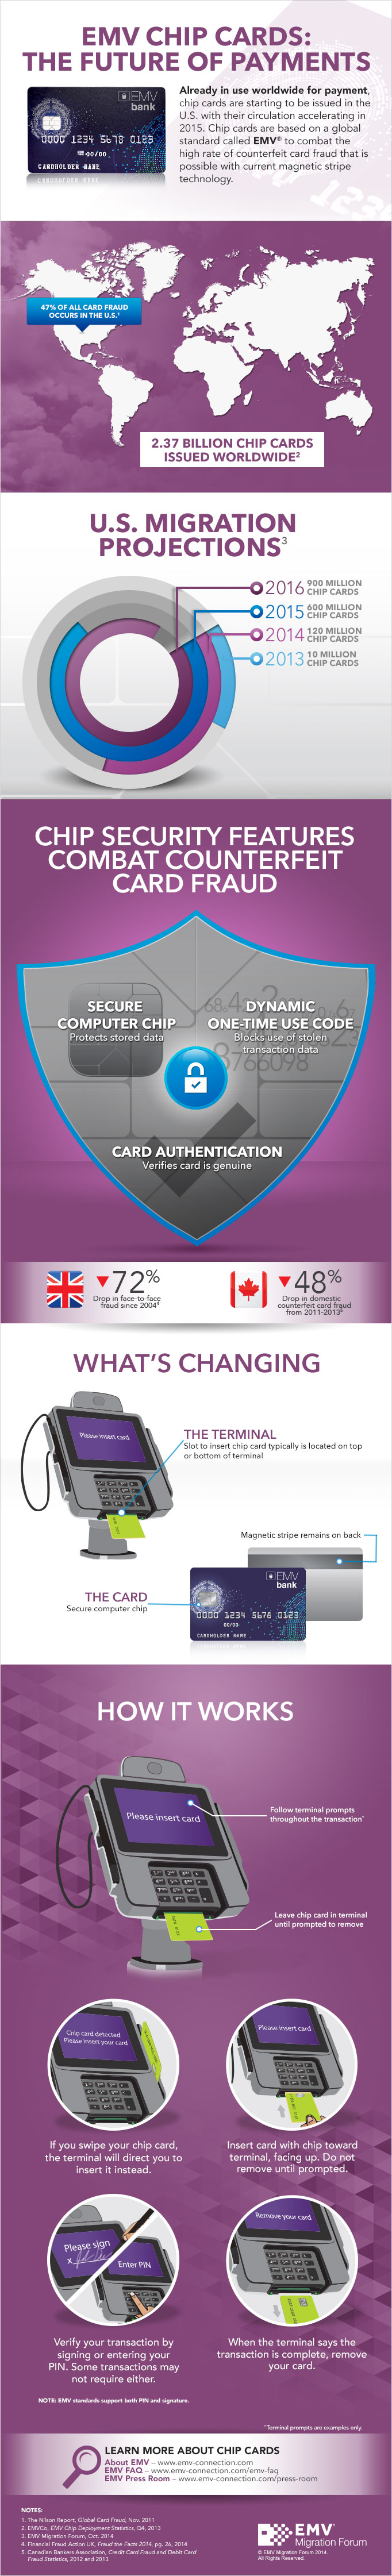 EMV Migration Forum Infographic on EMV Cards  (click to enlarge)